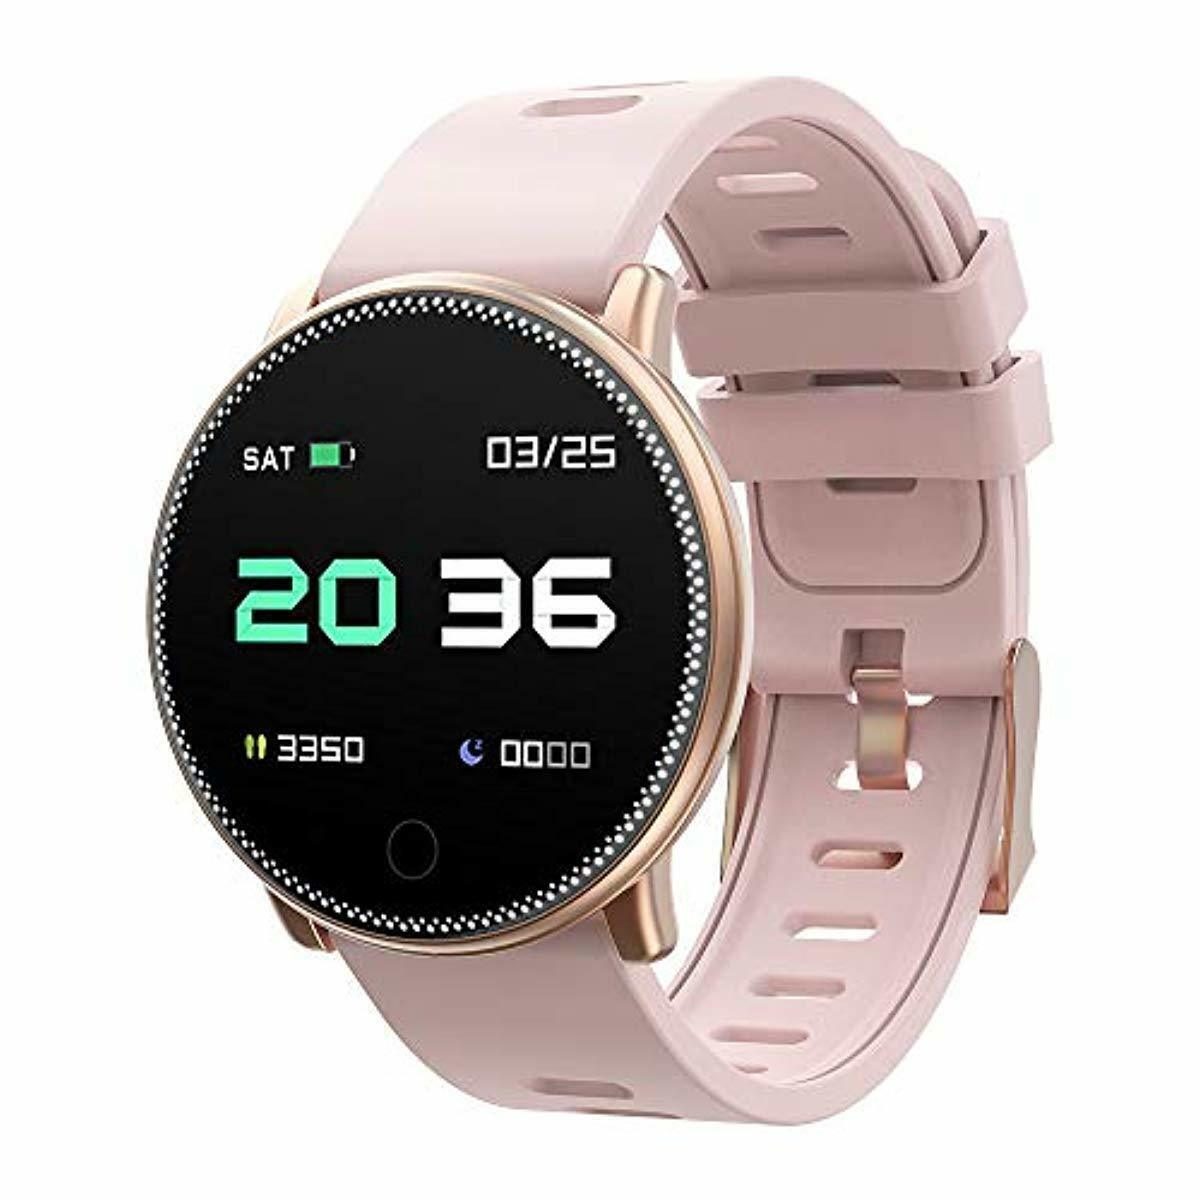 Smart Watch for Android and iOS Phone 2019 Version IP67 Wate